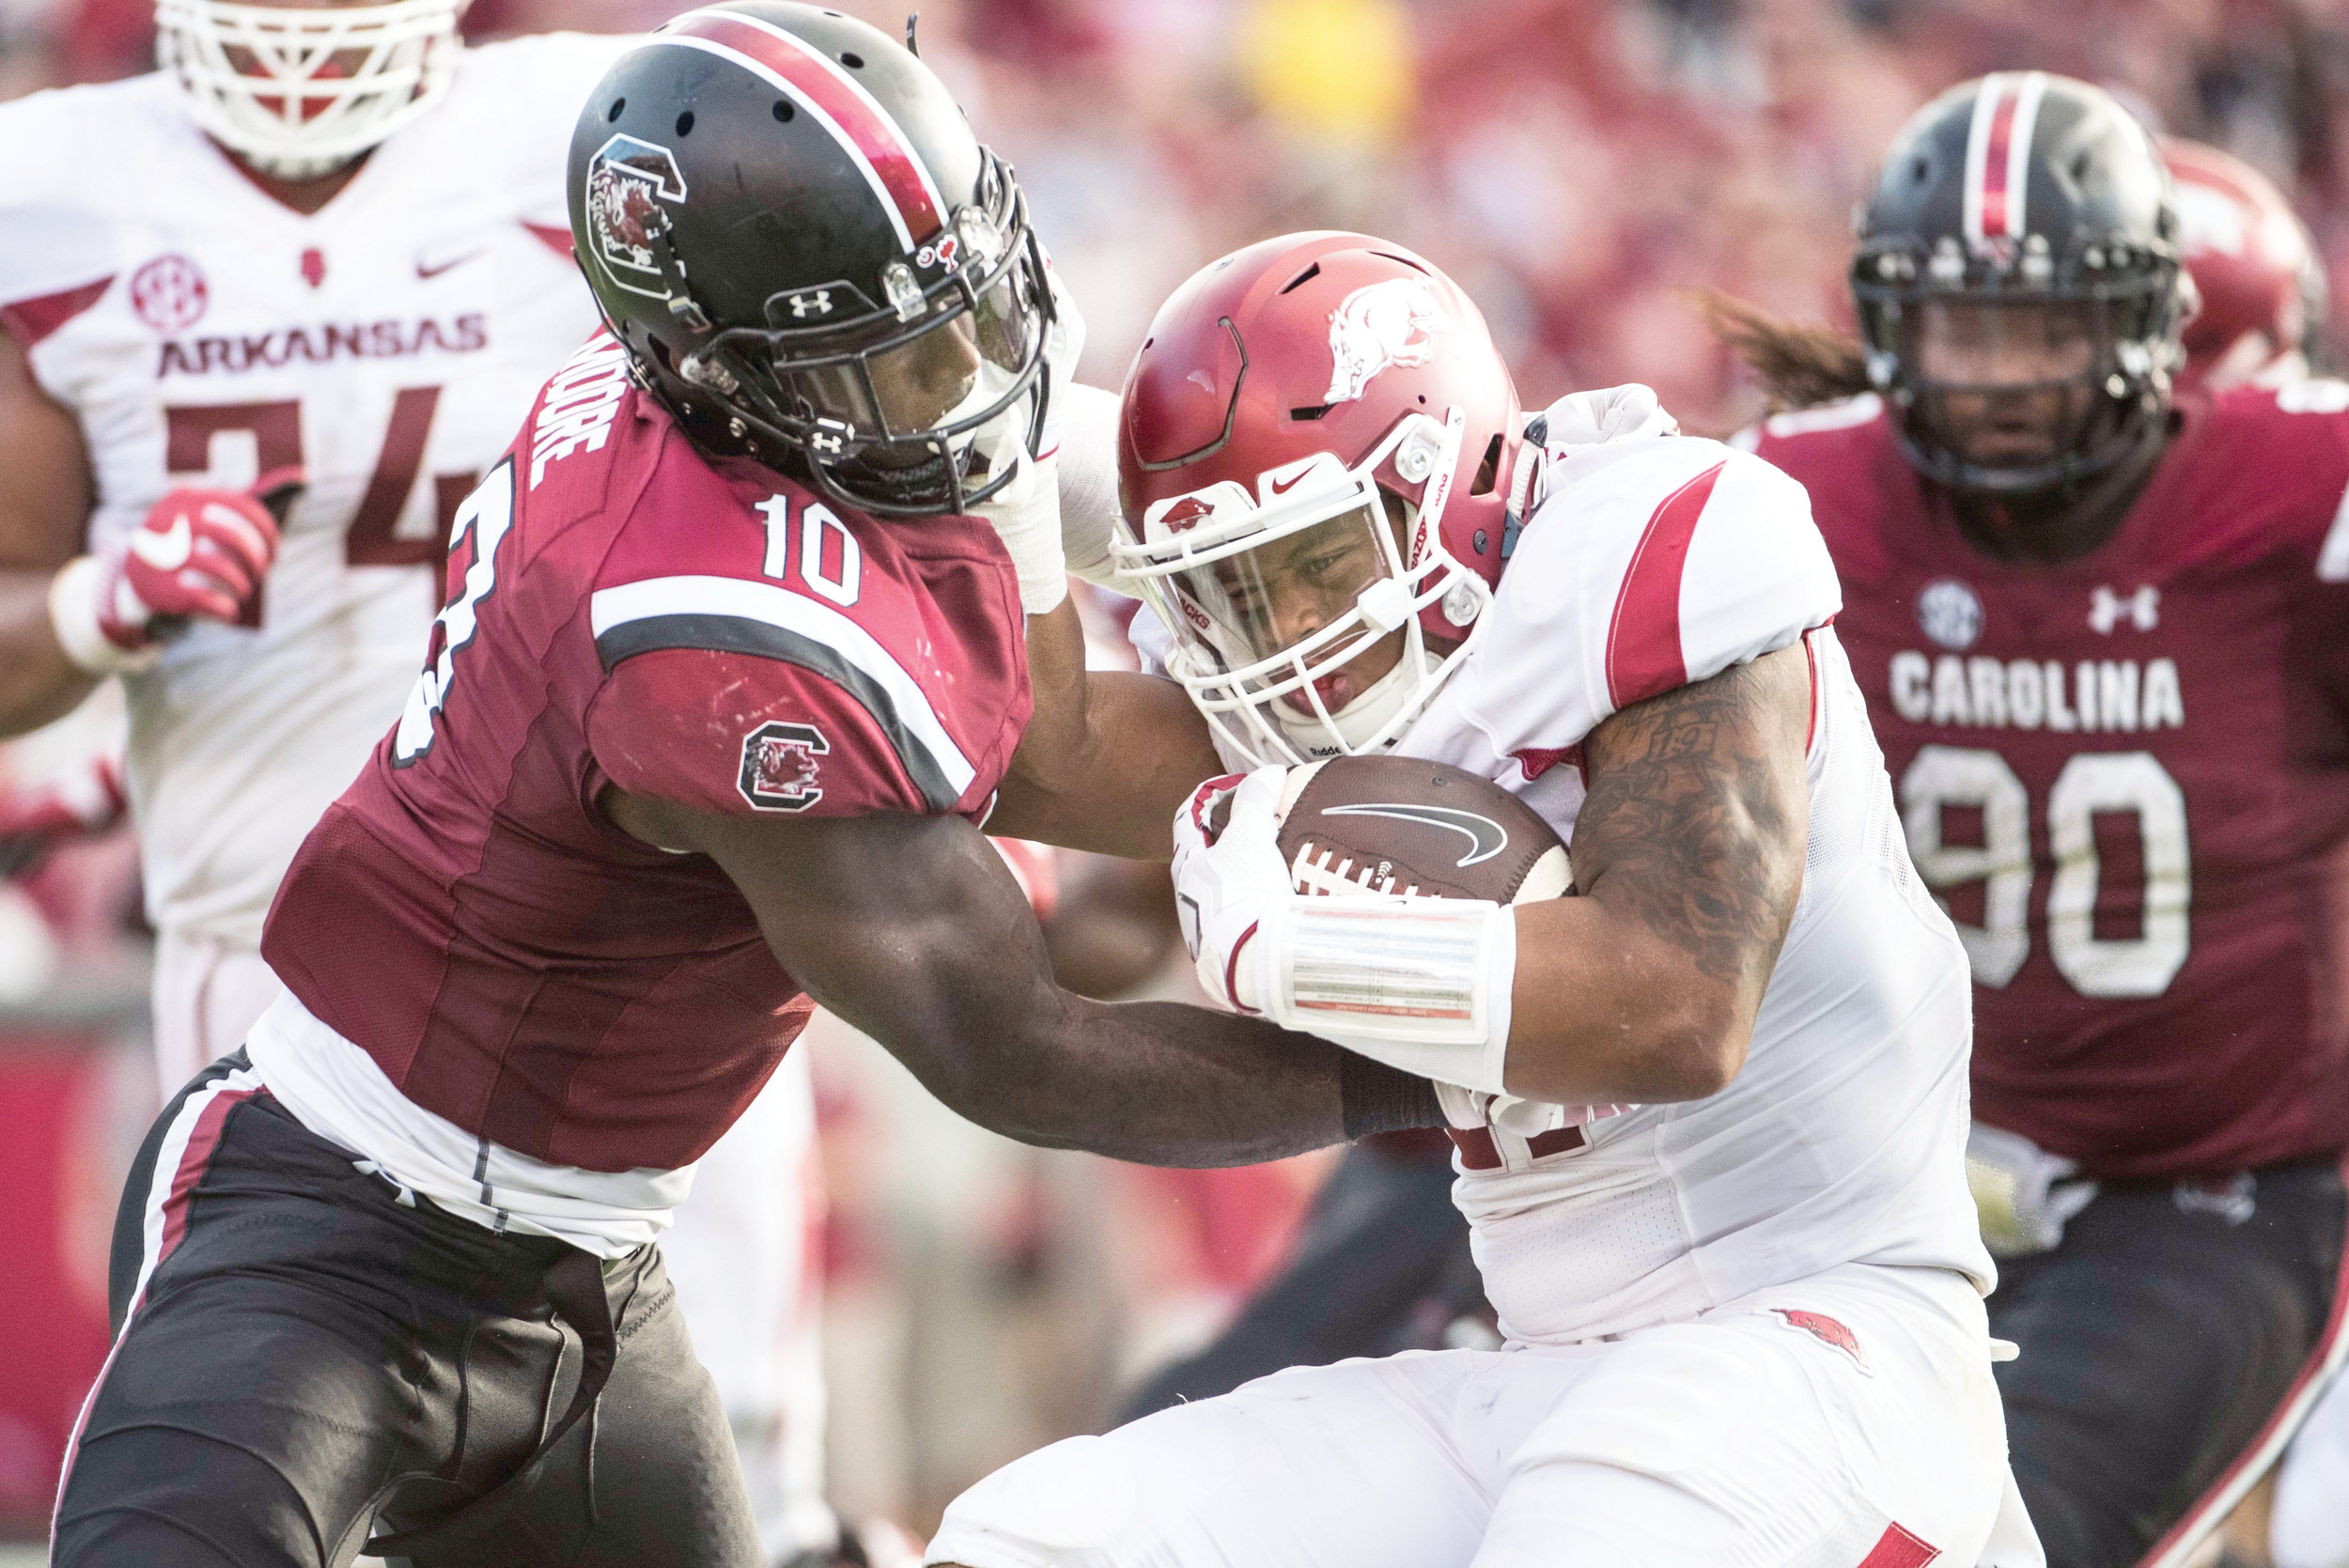 South Carolina linebacker Skai Moore, left, tackles Arkansas running back Devwah Whaley, center, during the Gamecocks' 48-22 victory on Saturday at Williams-Brice Stadium in Columbia.